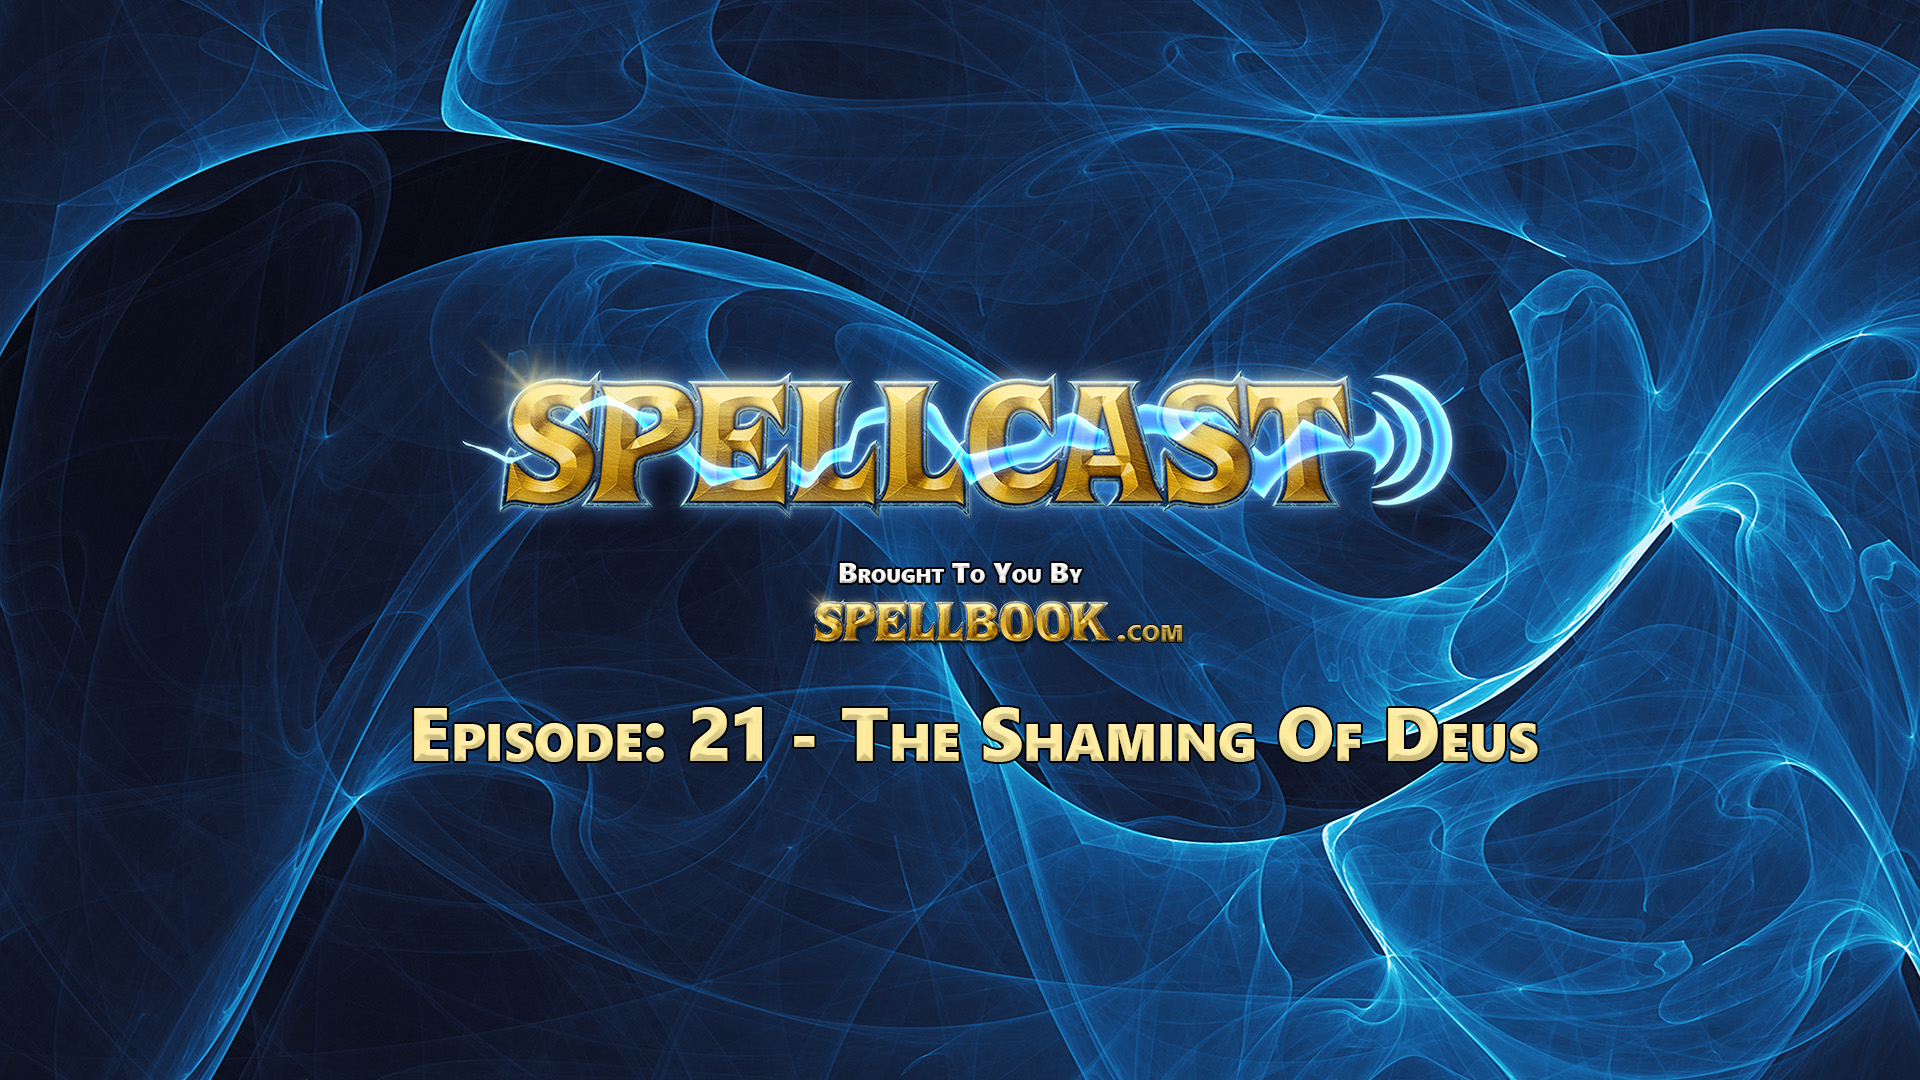 Spellcast Episode: 21 - The Shaming Of Deus